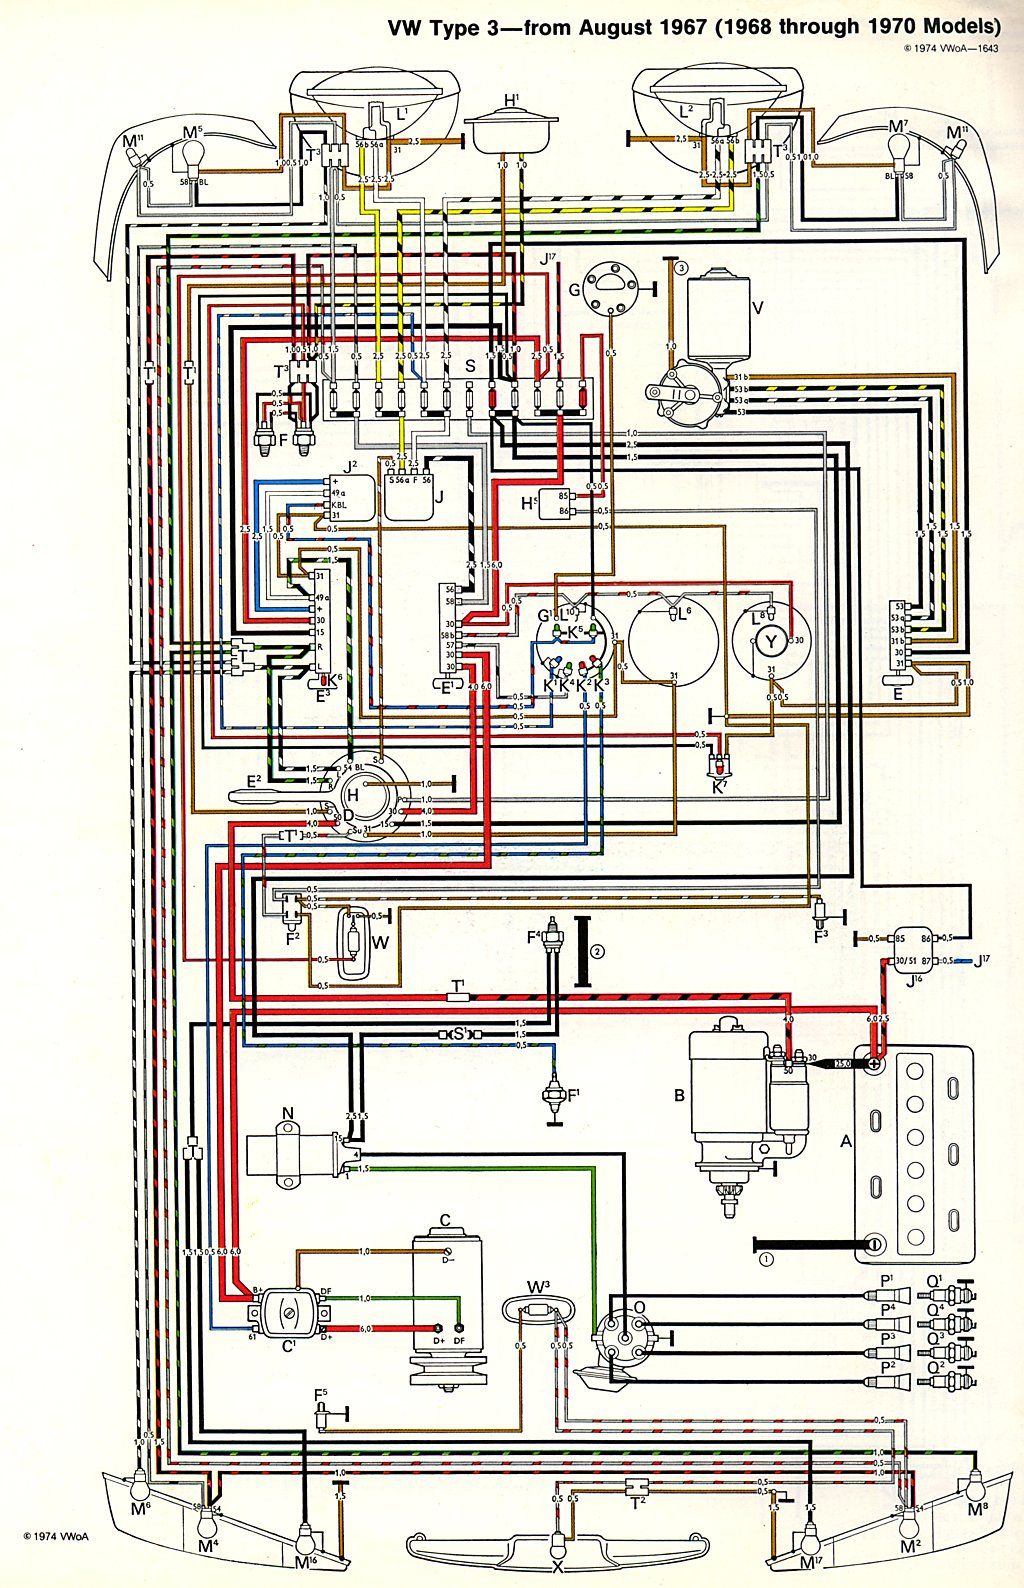 wiring diagram for 1964 vw bus wiring diagram 71 vw bus wiring diagram wiring